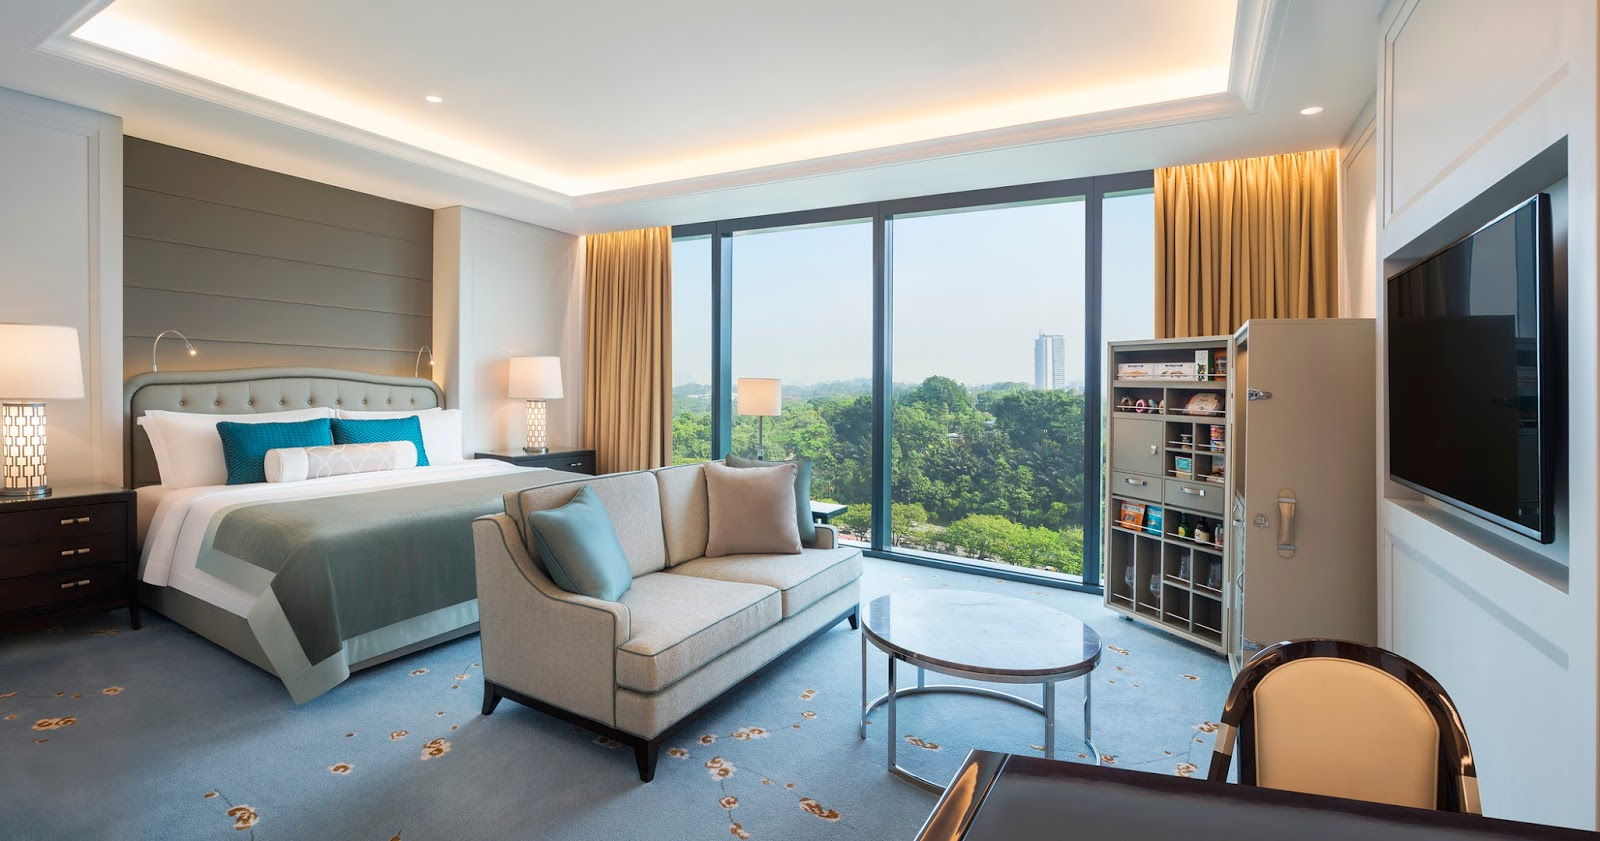 Most Expensive Hotel Room In Kuala Lumpur